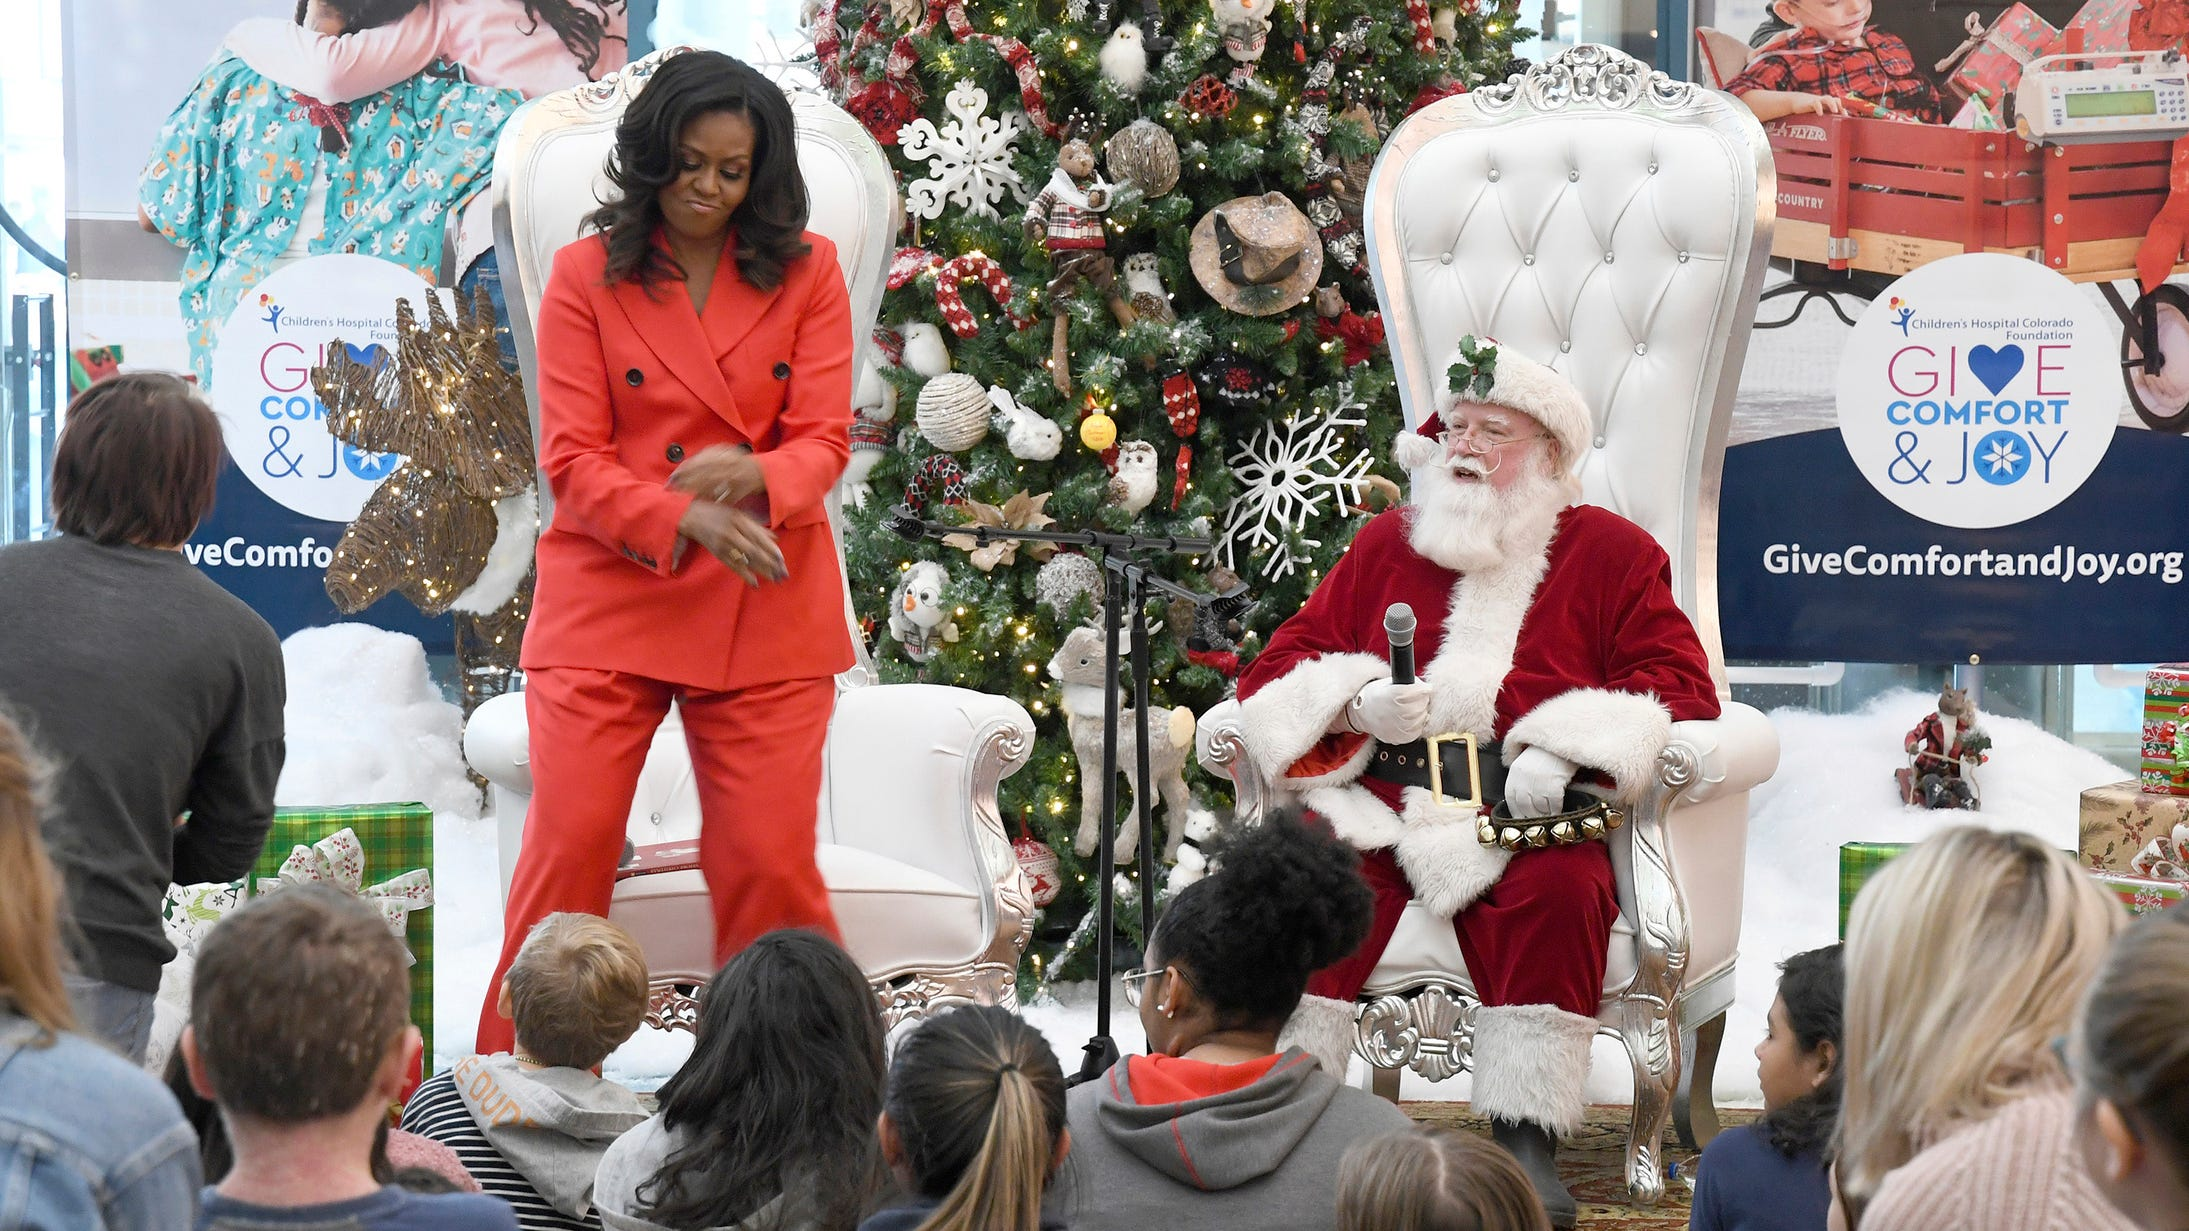 Former first lady Michelle Obama broke down some of her favorite dance moves at the request of a patient at Children's Hospital Colorado Thursday night.